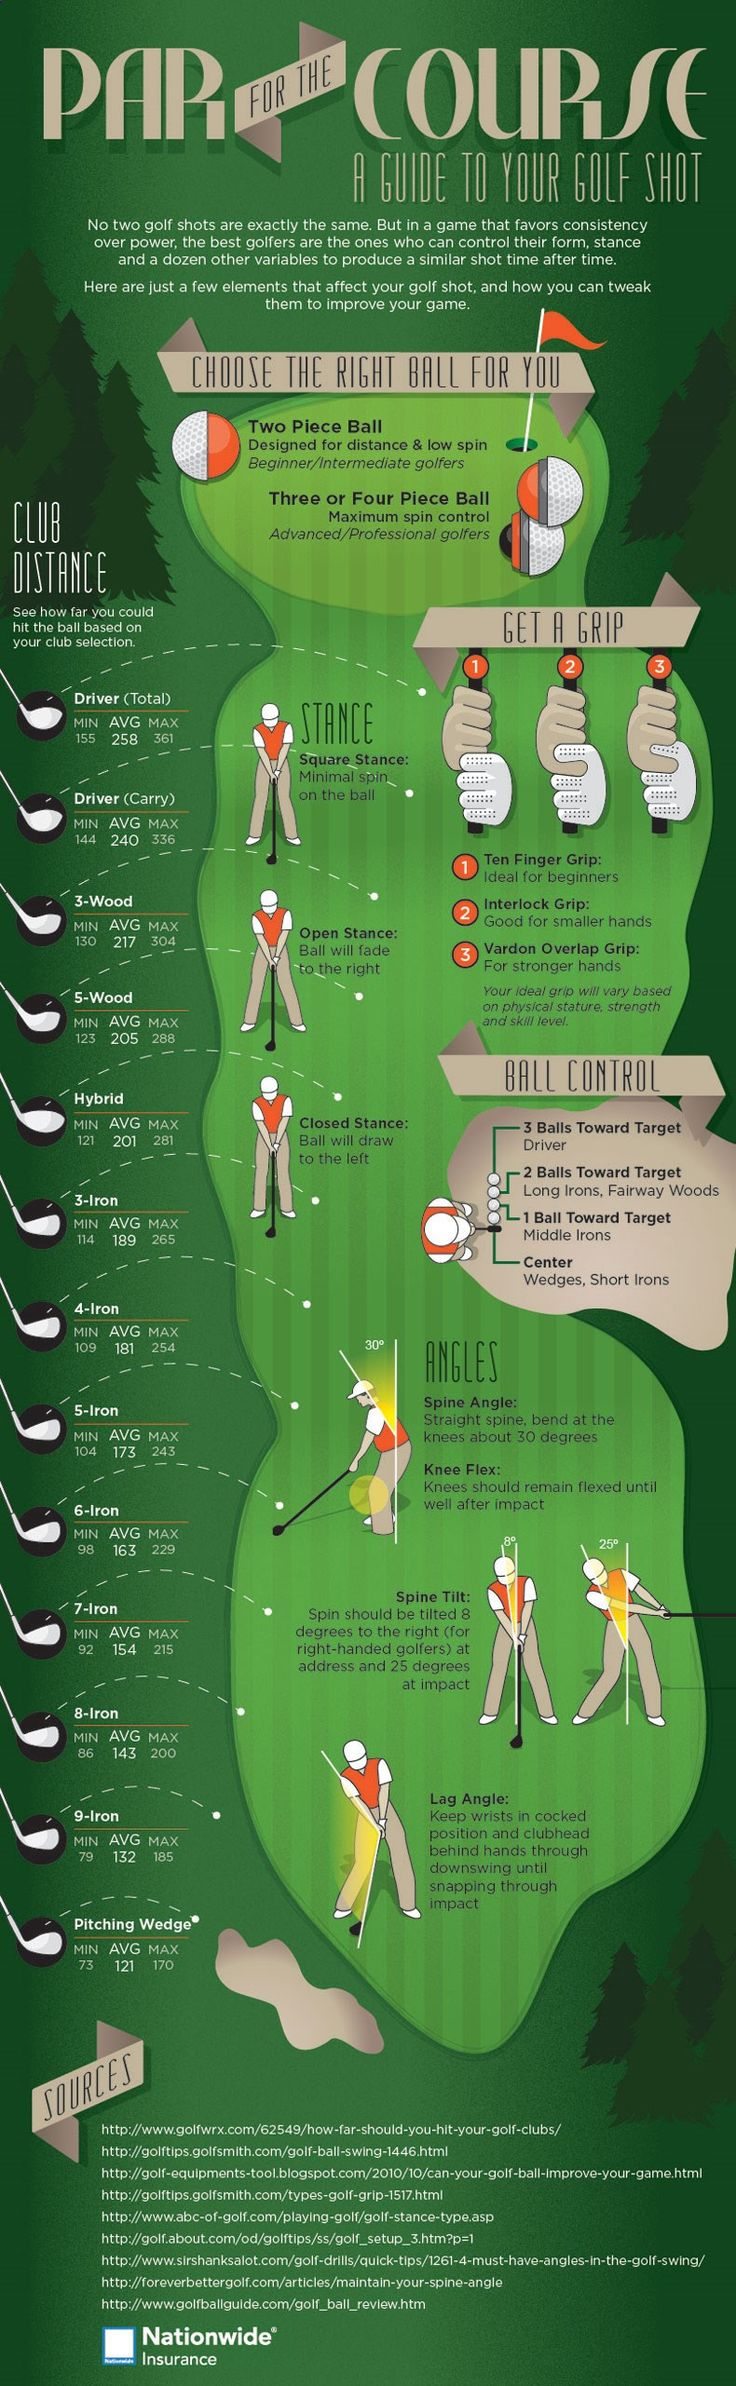 Golf Clubs - Understanding how far you hit your ball with each club is an essential factor in scoring to your potential when golfing. There are many elements that can effect your game... Read more »